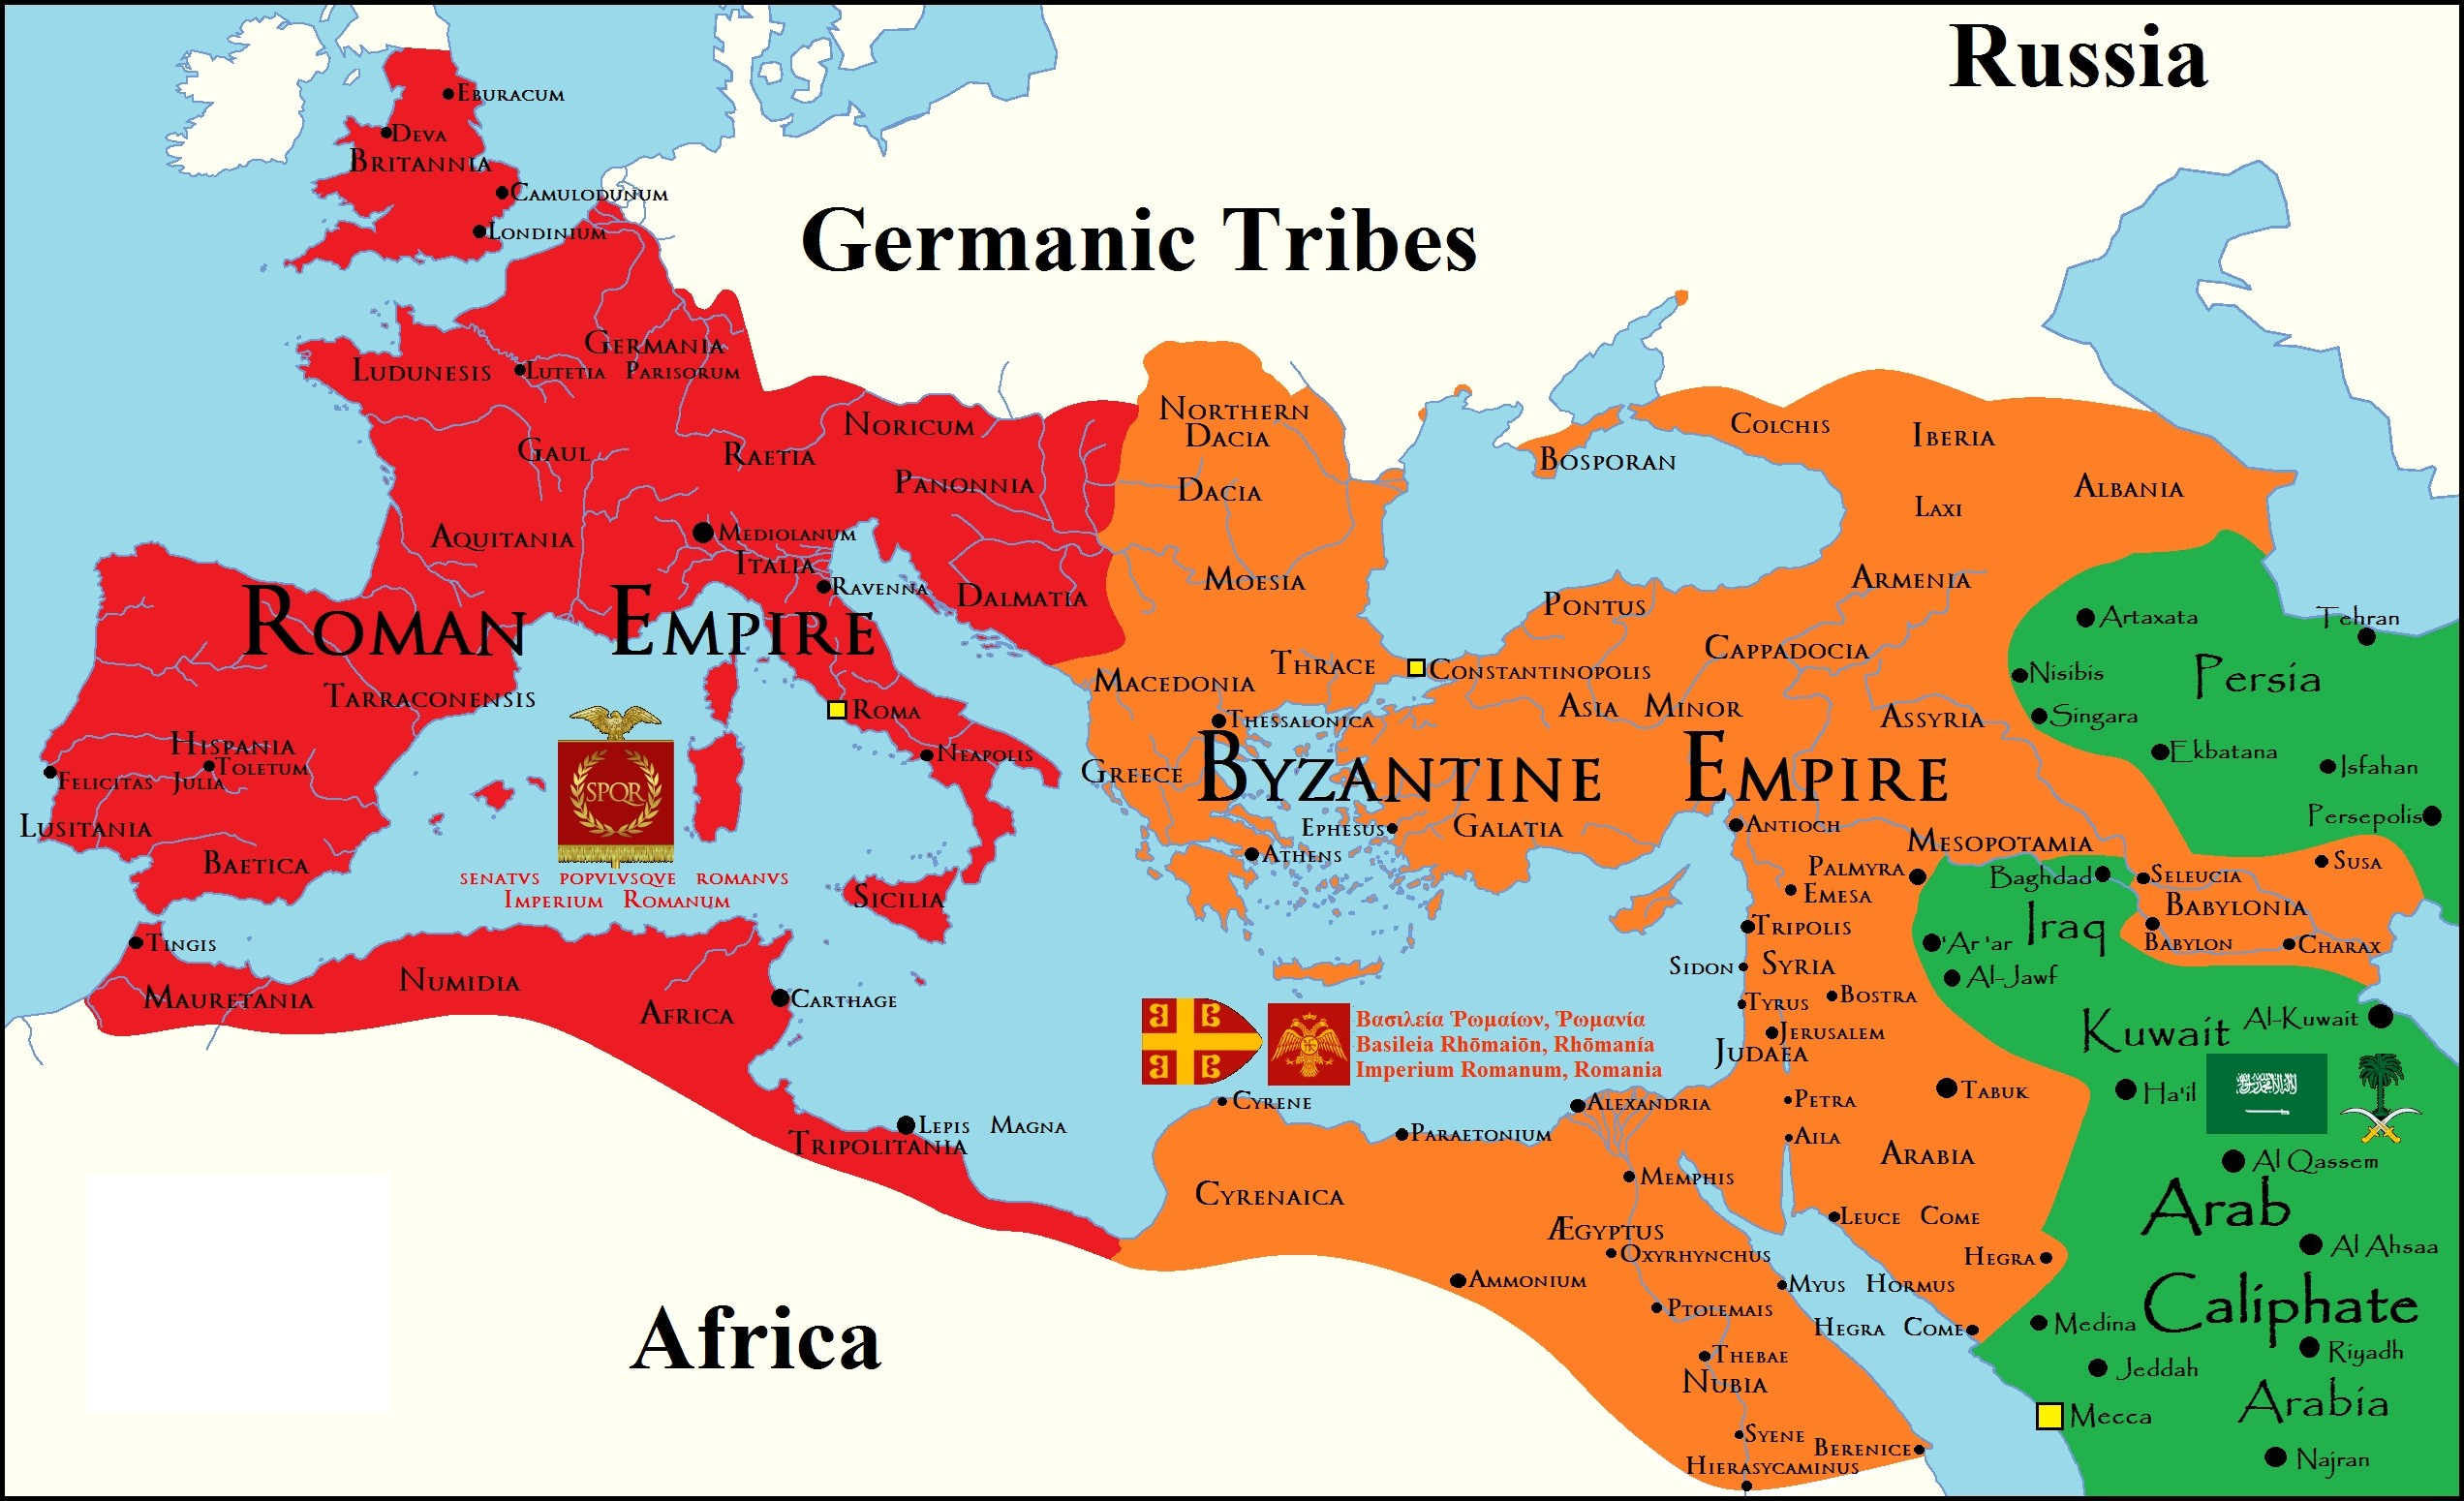 a history of culture and politics in the roman empire The roman empire and han china of the first  its wealth-based politics  ruling elite in world history the histories of rome and china show that.